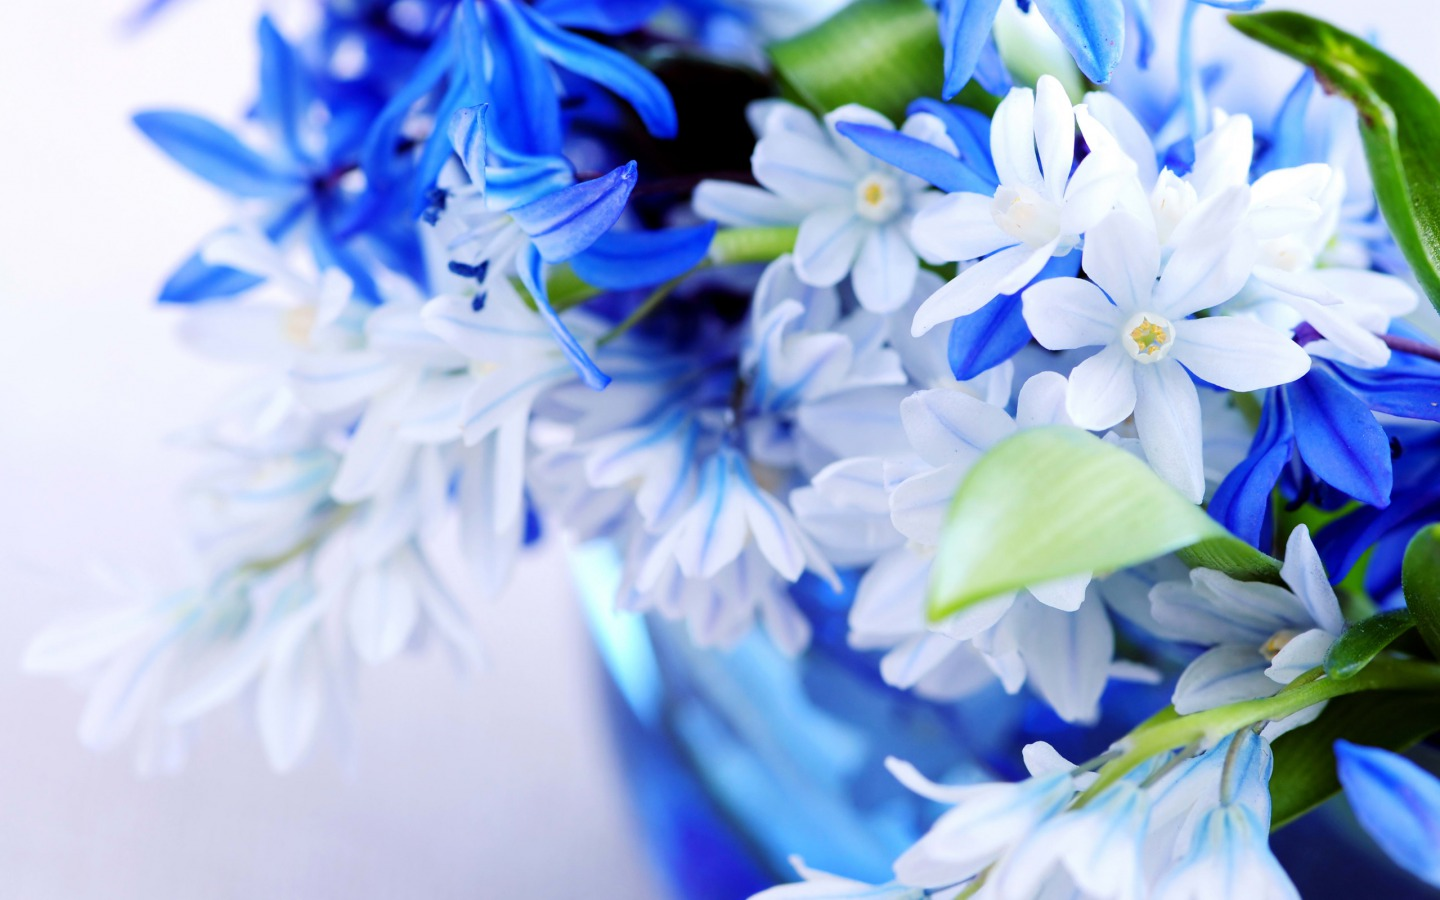 flowers images white & blue flowers hd wallpaper and background